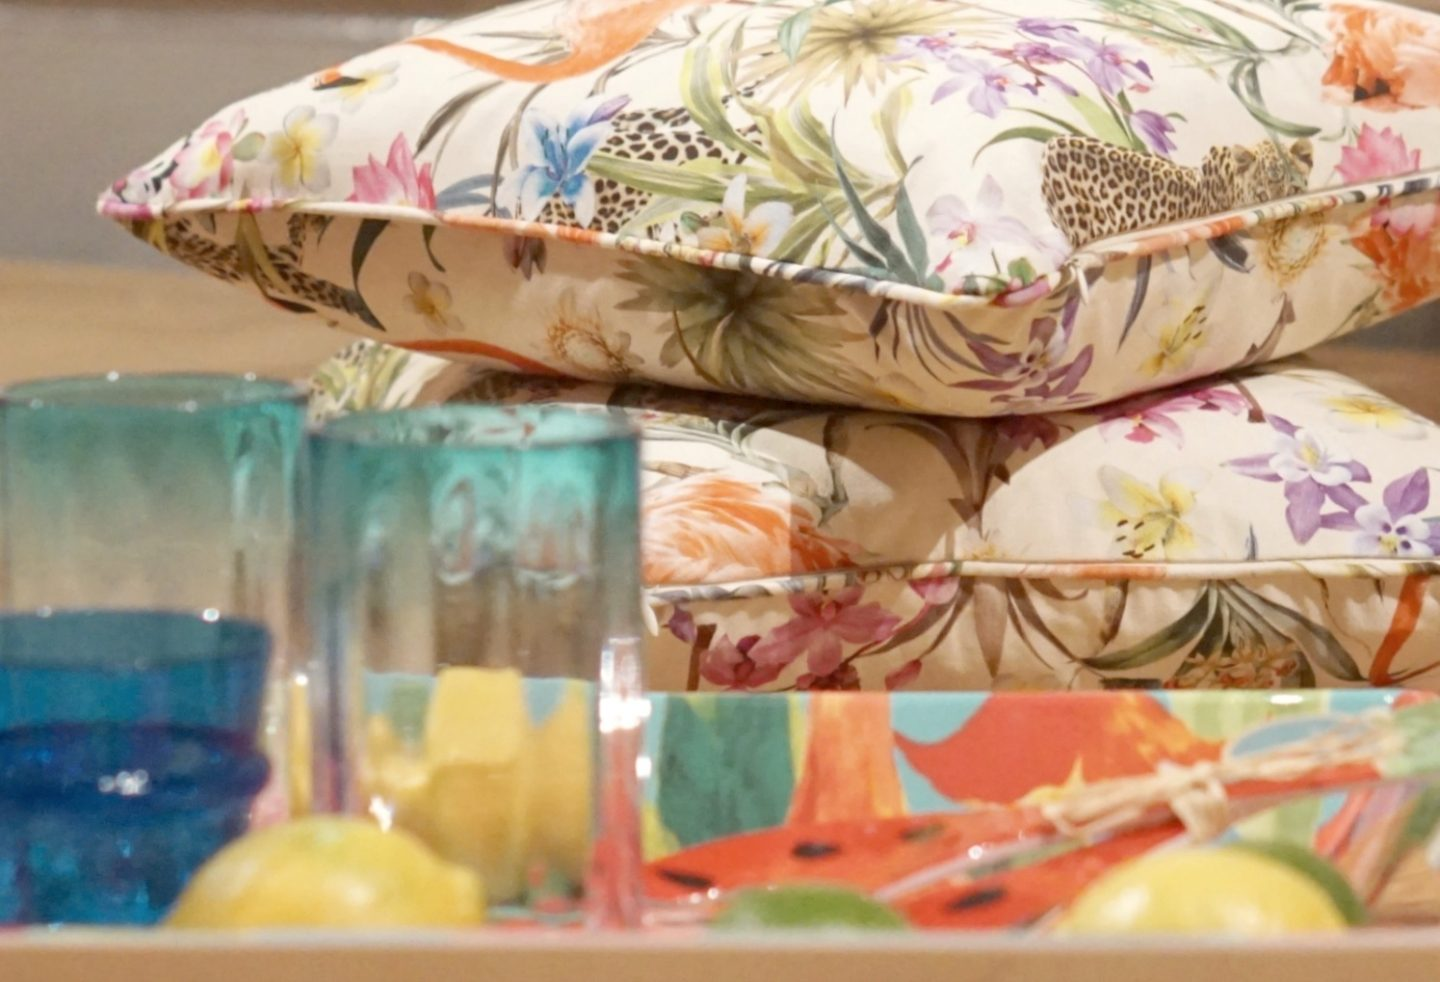 HomeSense Summer Collection